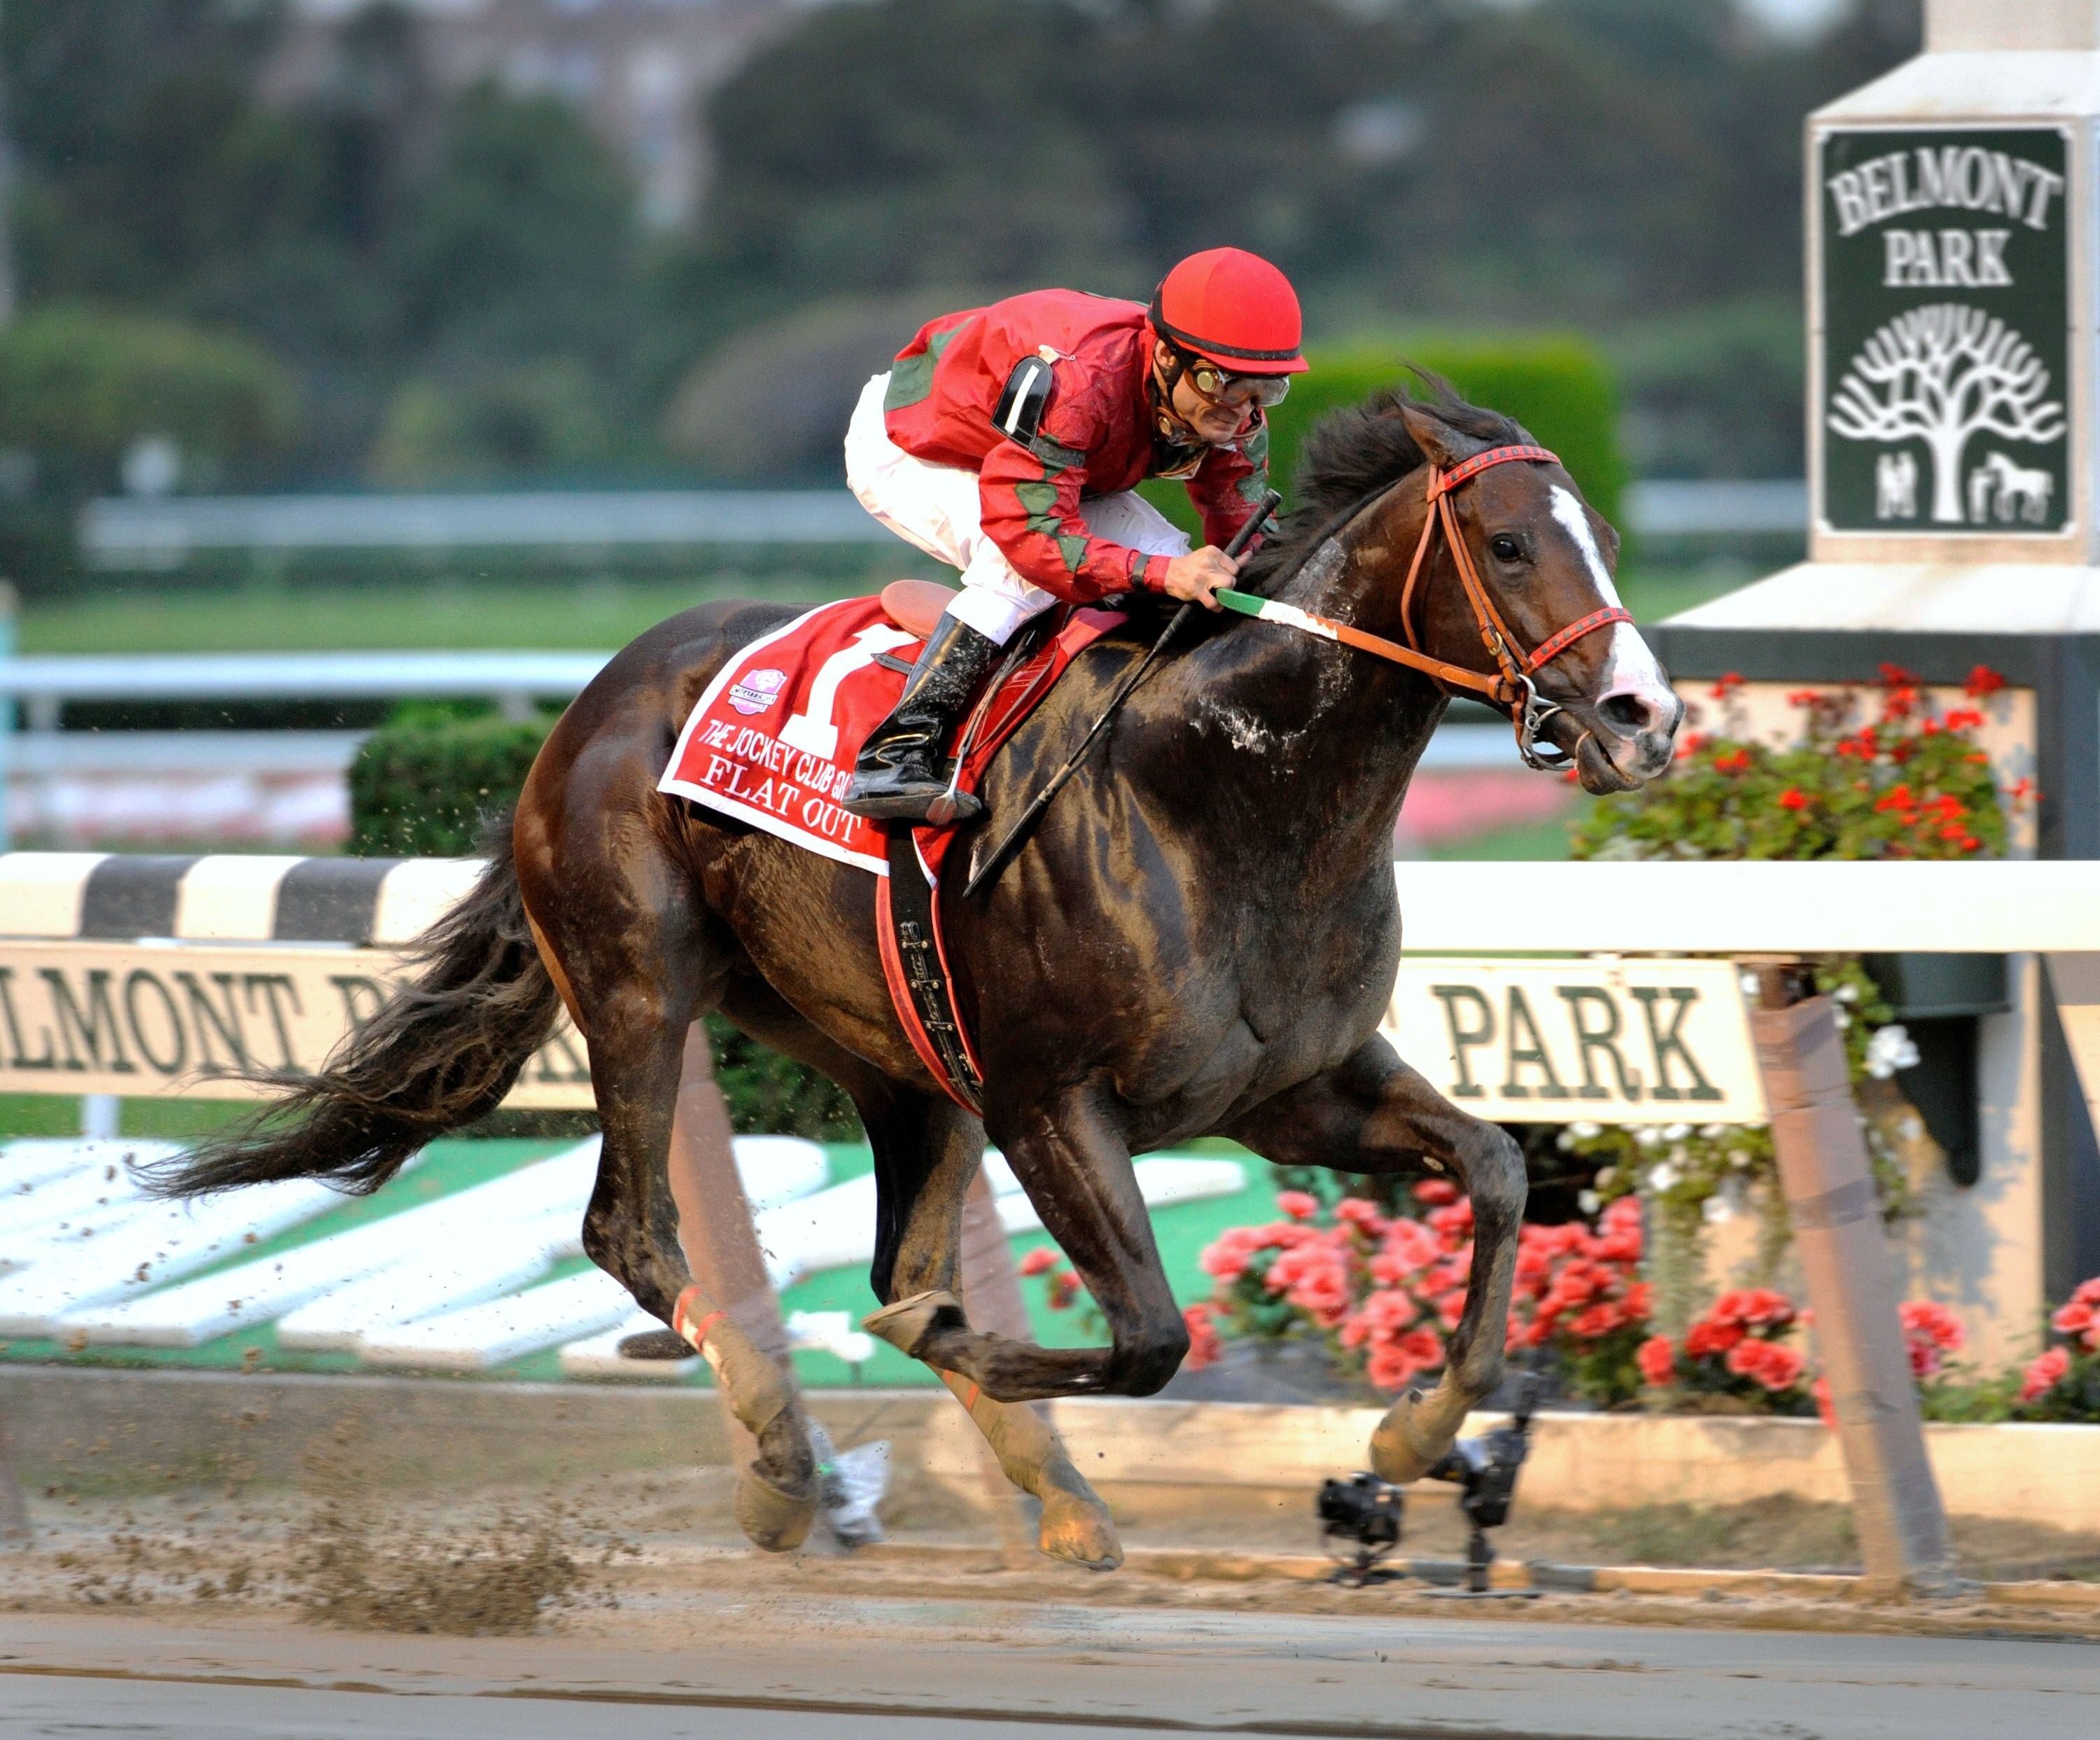 Alex Solis aboard Flat Out at Belmont (NYRA)